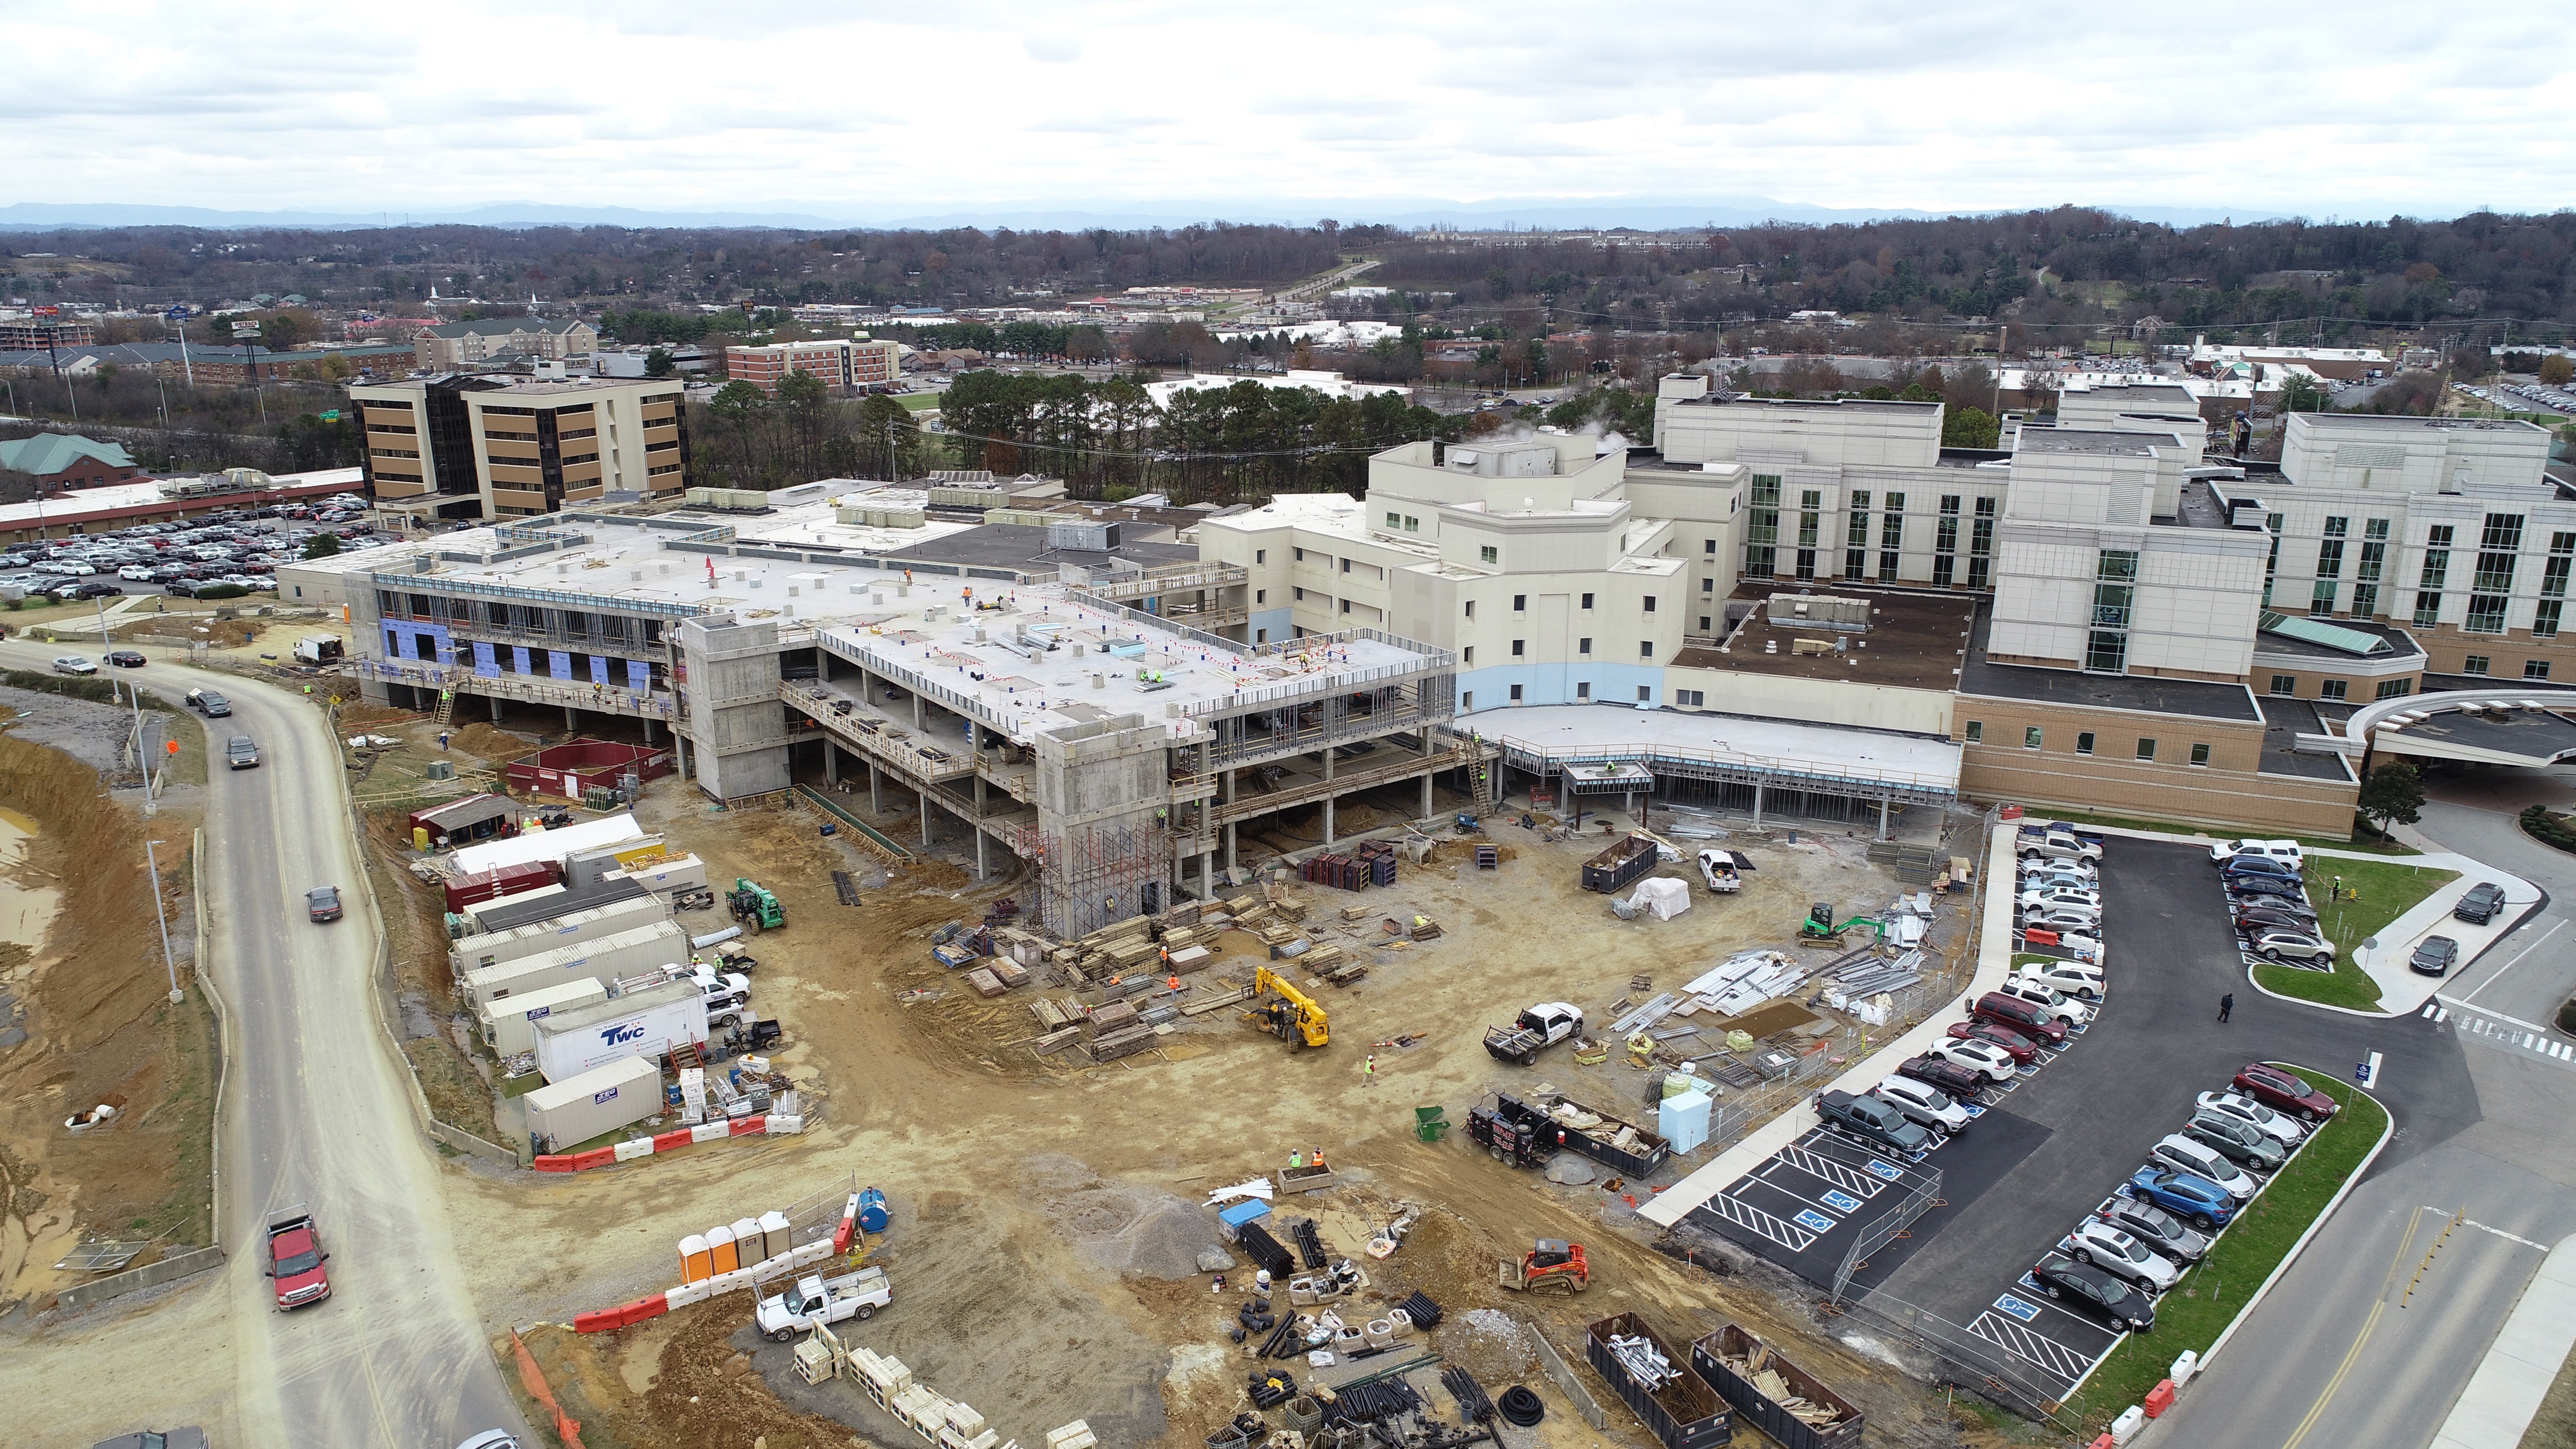 December 17 aerial view showing construction of tower tying in to existing building.